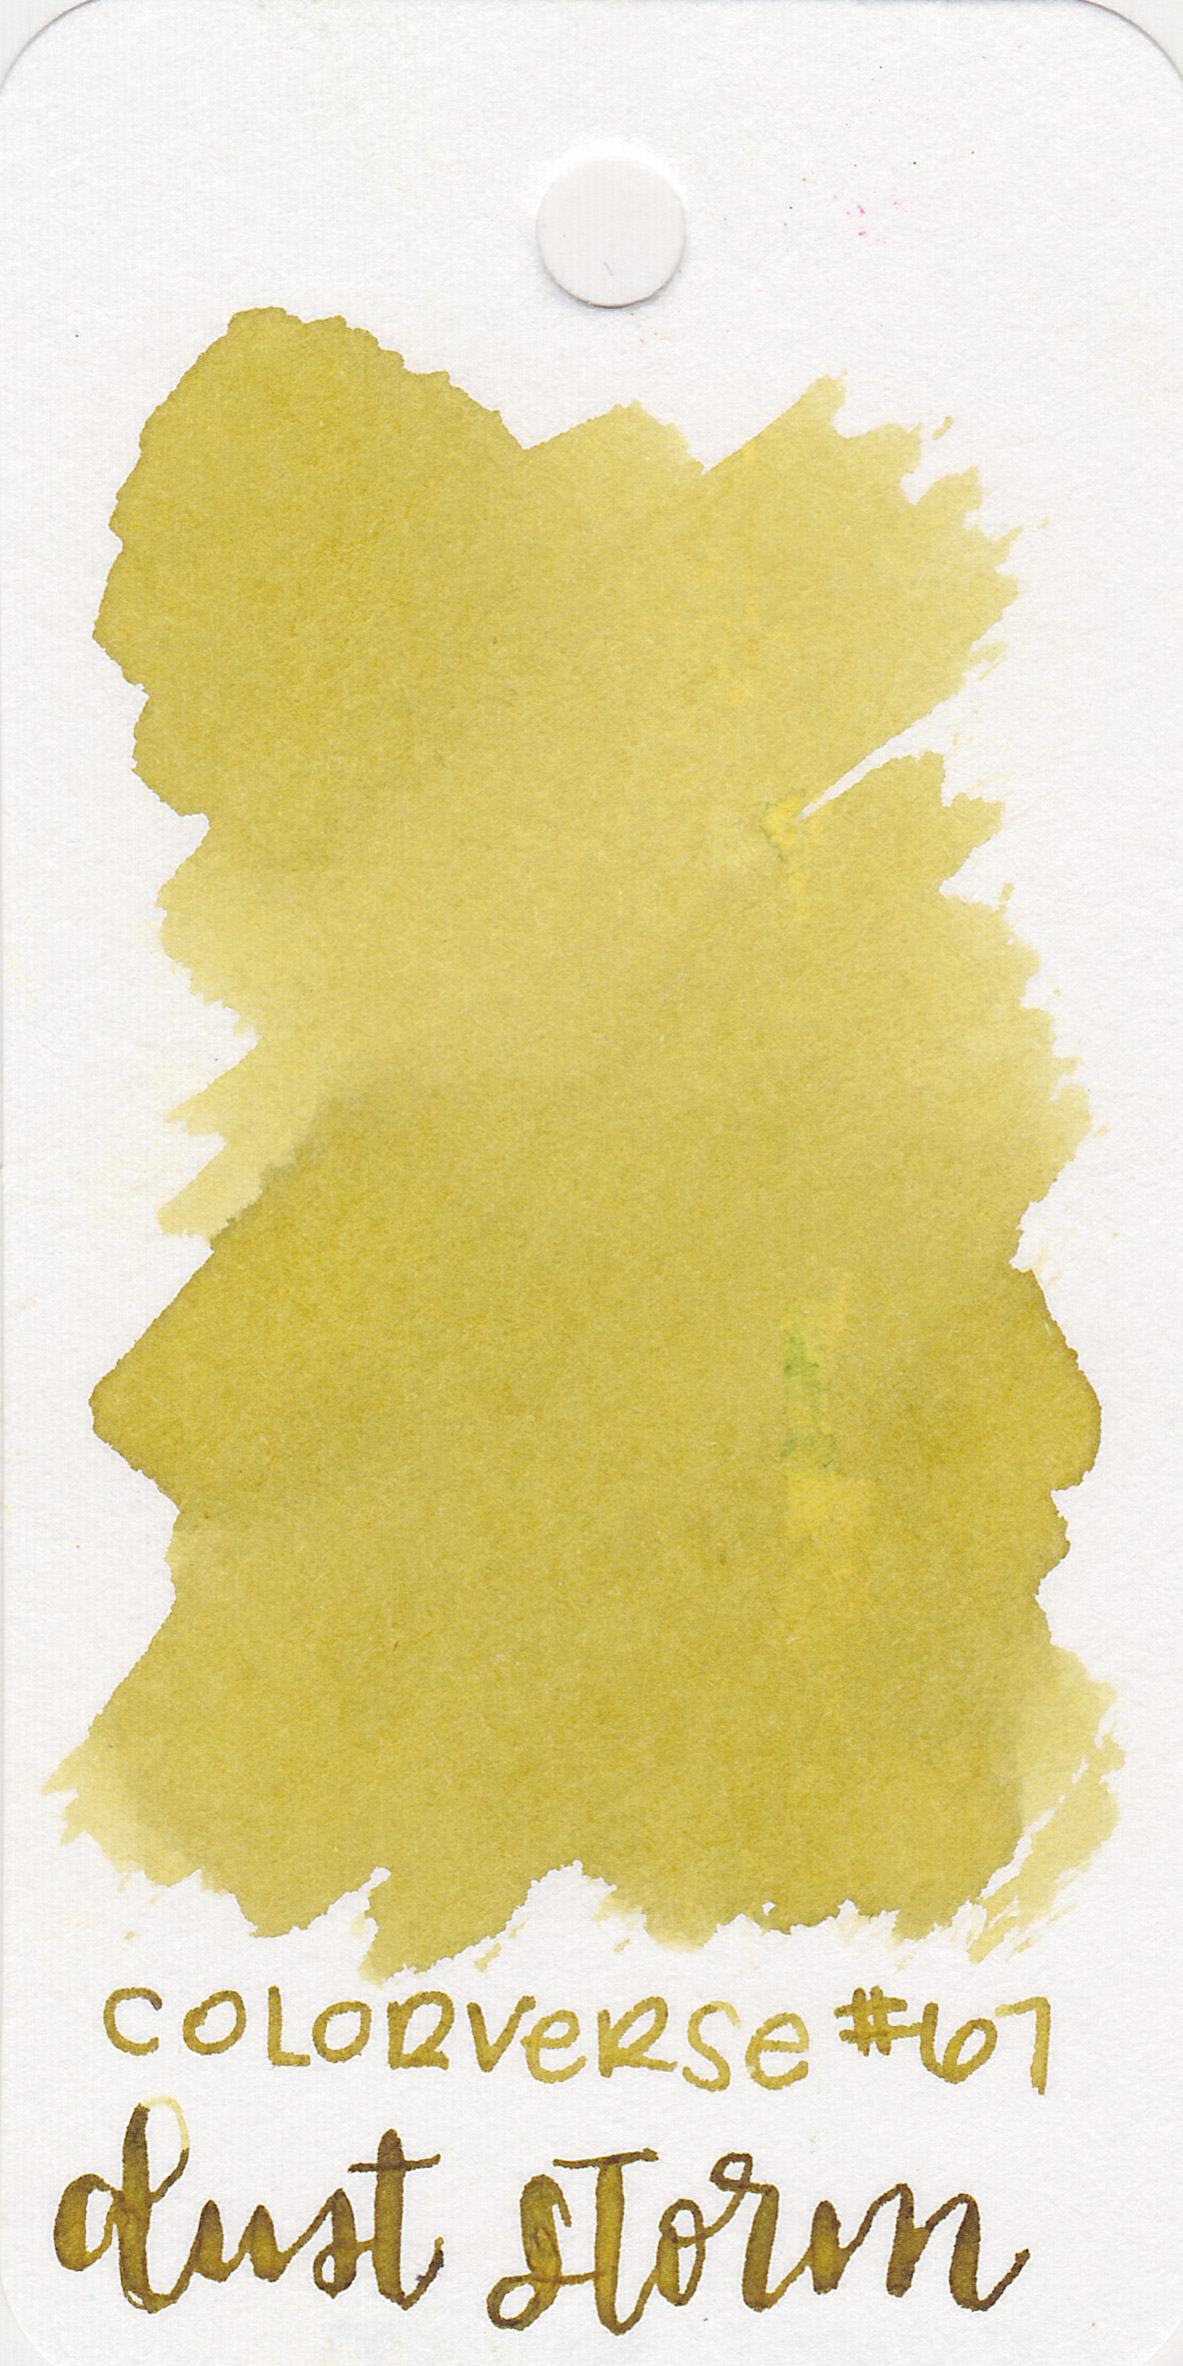 The color: - Dust Storm is a brownish-yellow with some shading.